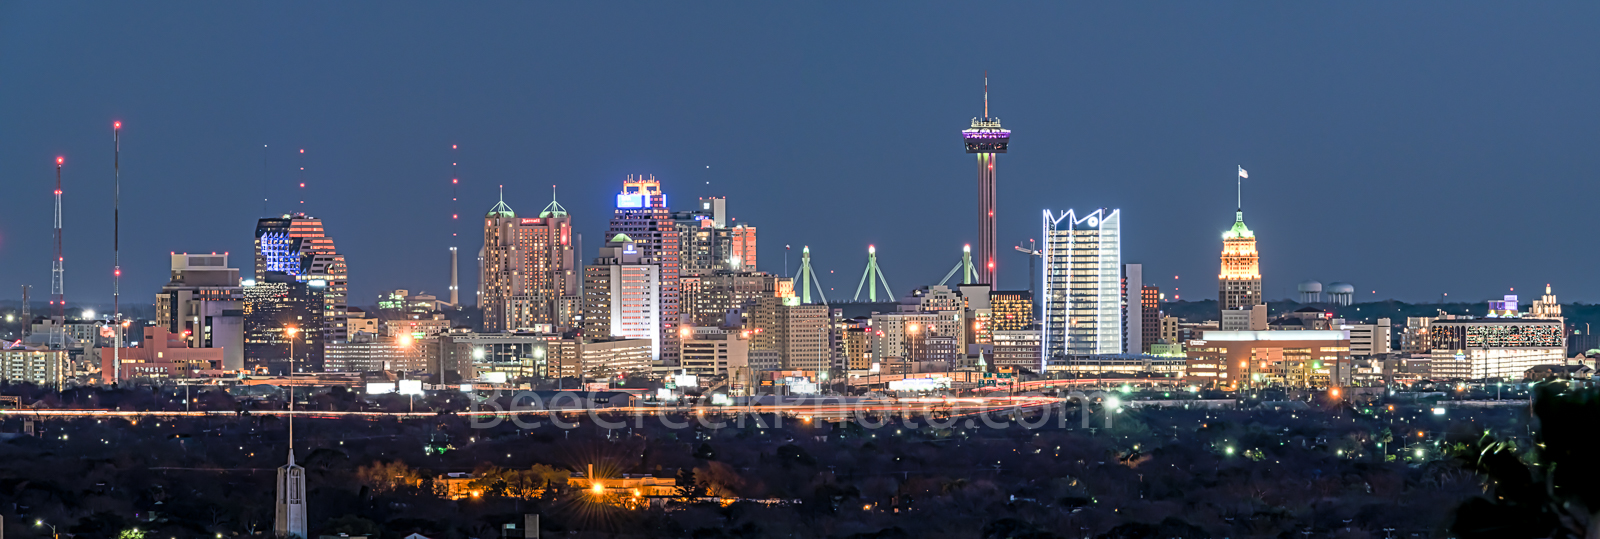 San Antonio Skyline, Night, Dark, san antonio images, san antonio photos, san antonio pictures, San Antonio, Skyline, Frost Tower, Tower of America, Life Tower, Marriott, BBVA Compass Bank, images of